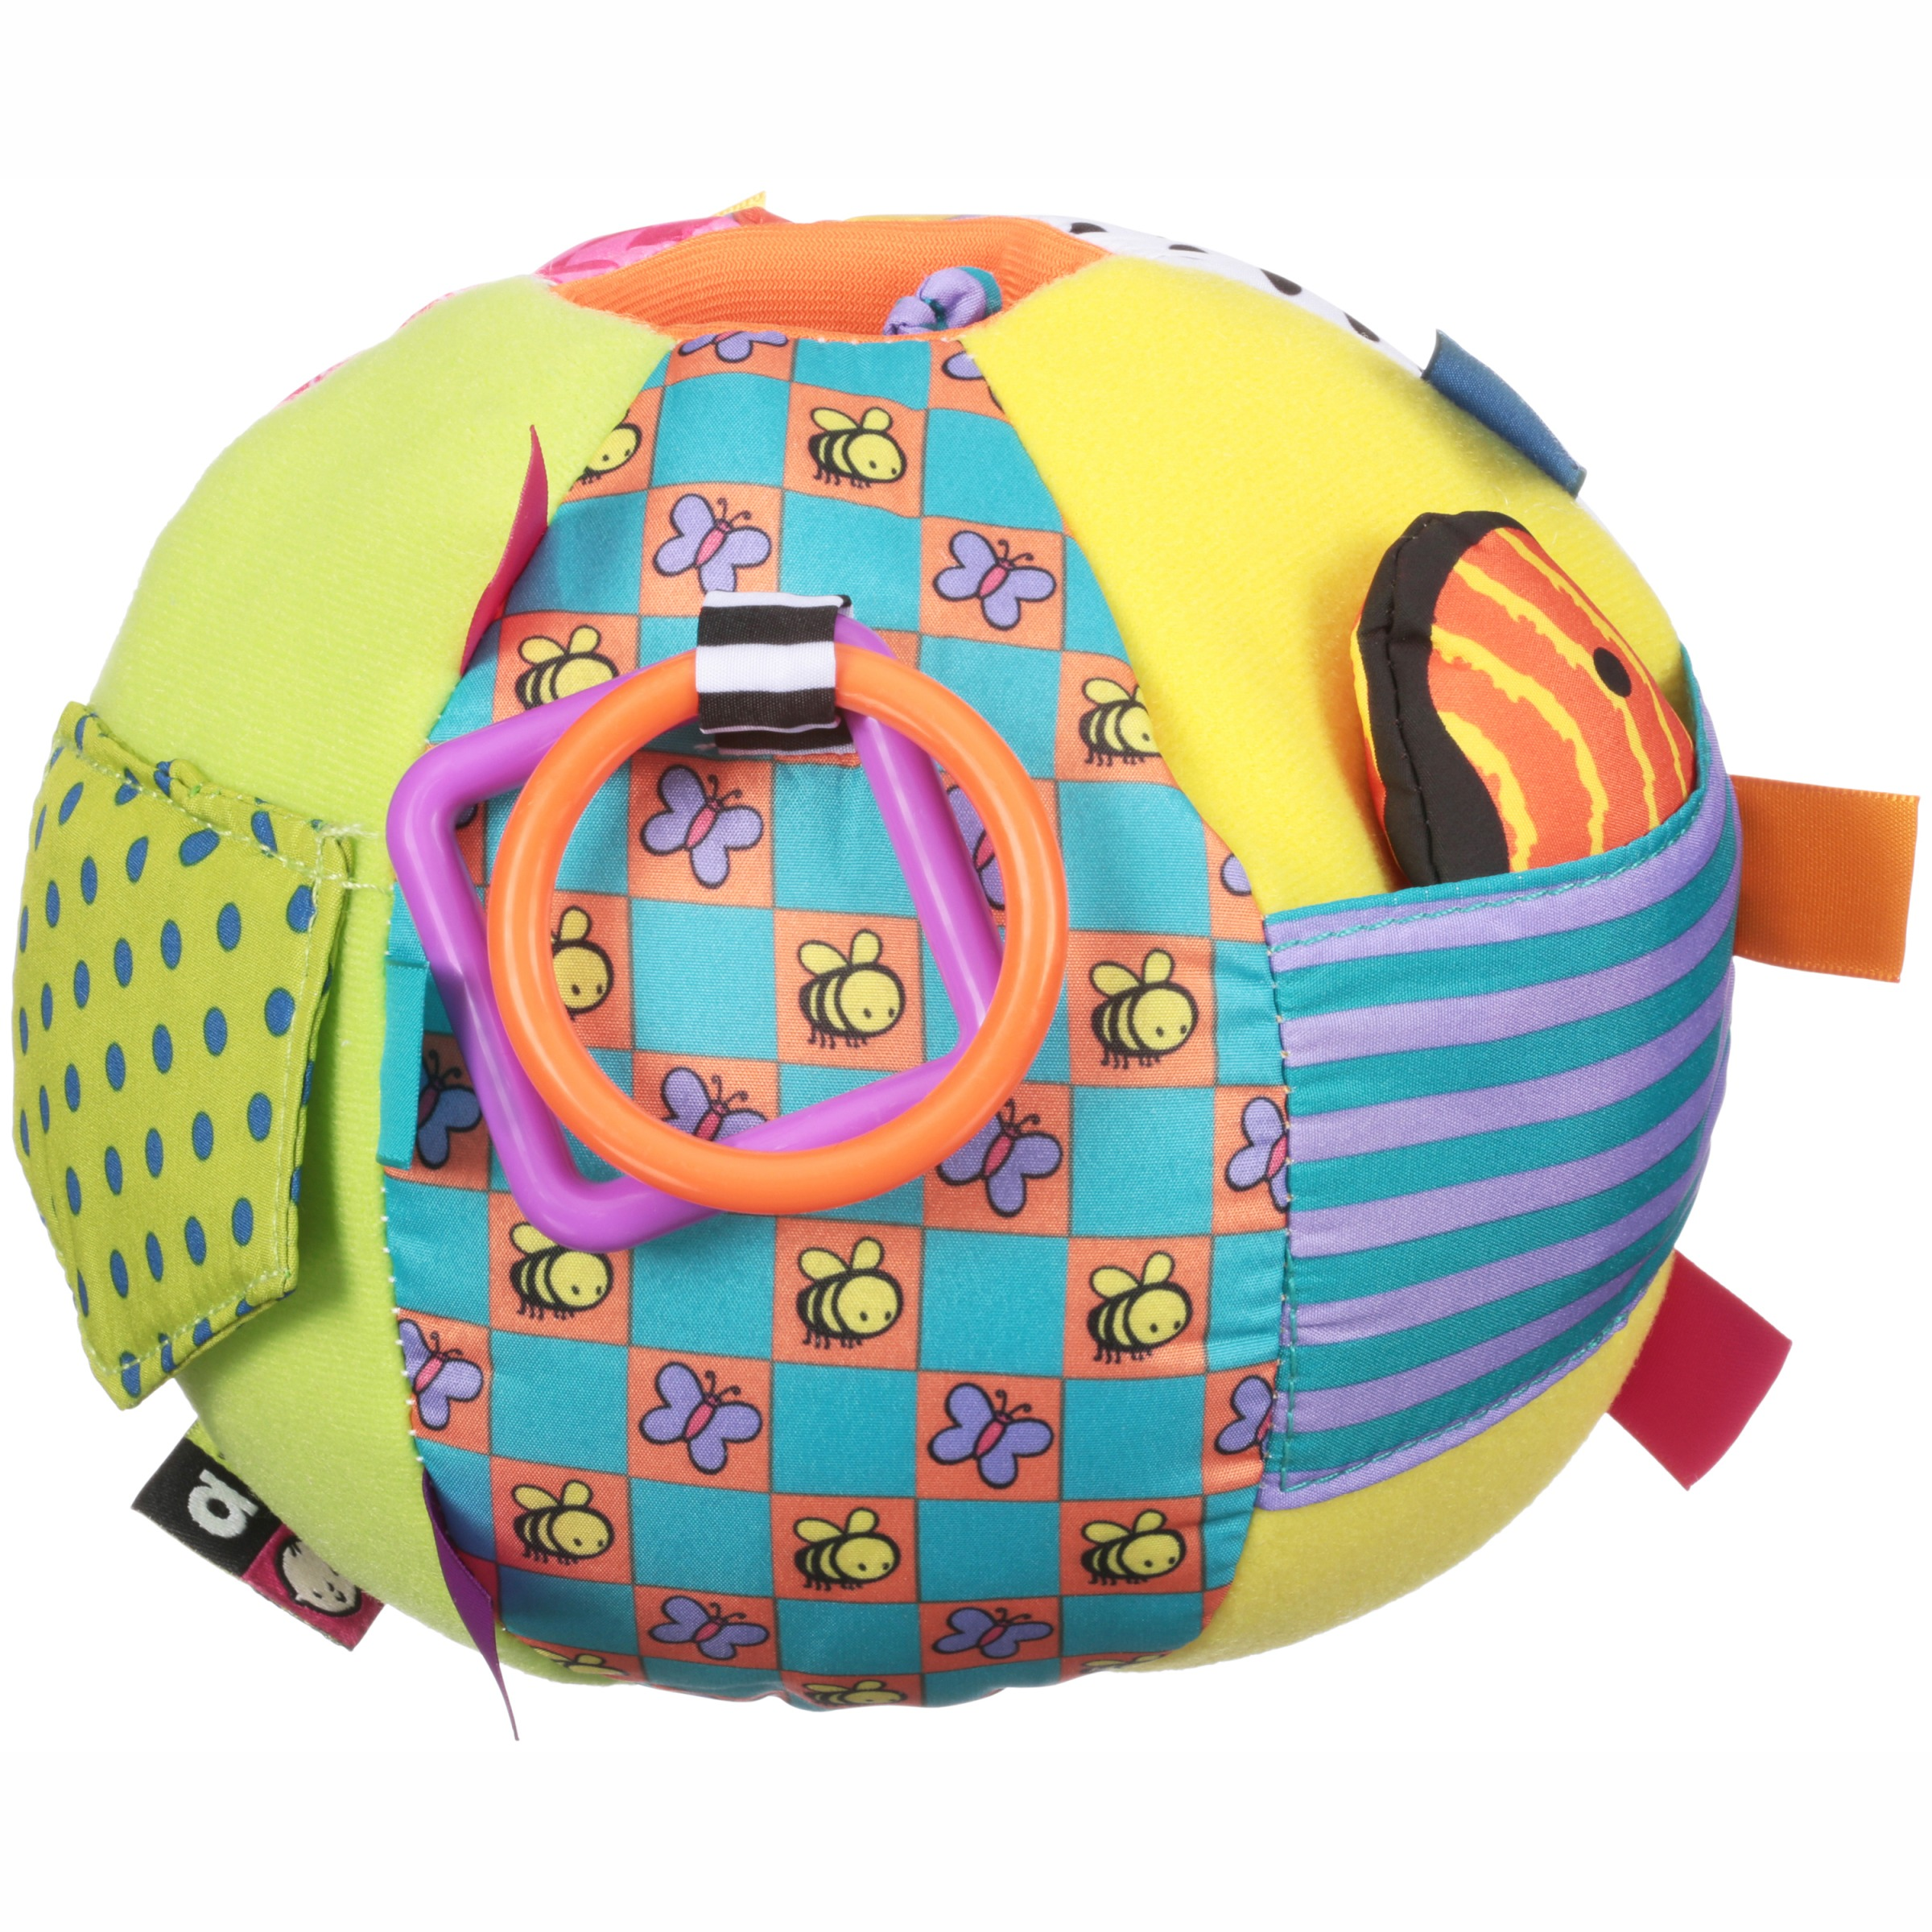 Kids Preferred™ Amazing Baby™ Developmental Activity Ball with Peek-a-boo-Bear